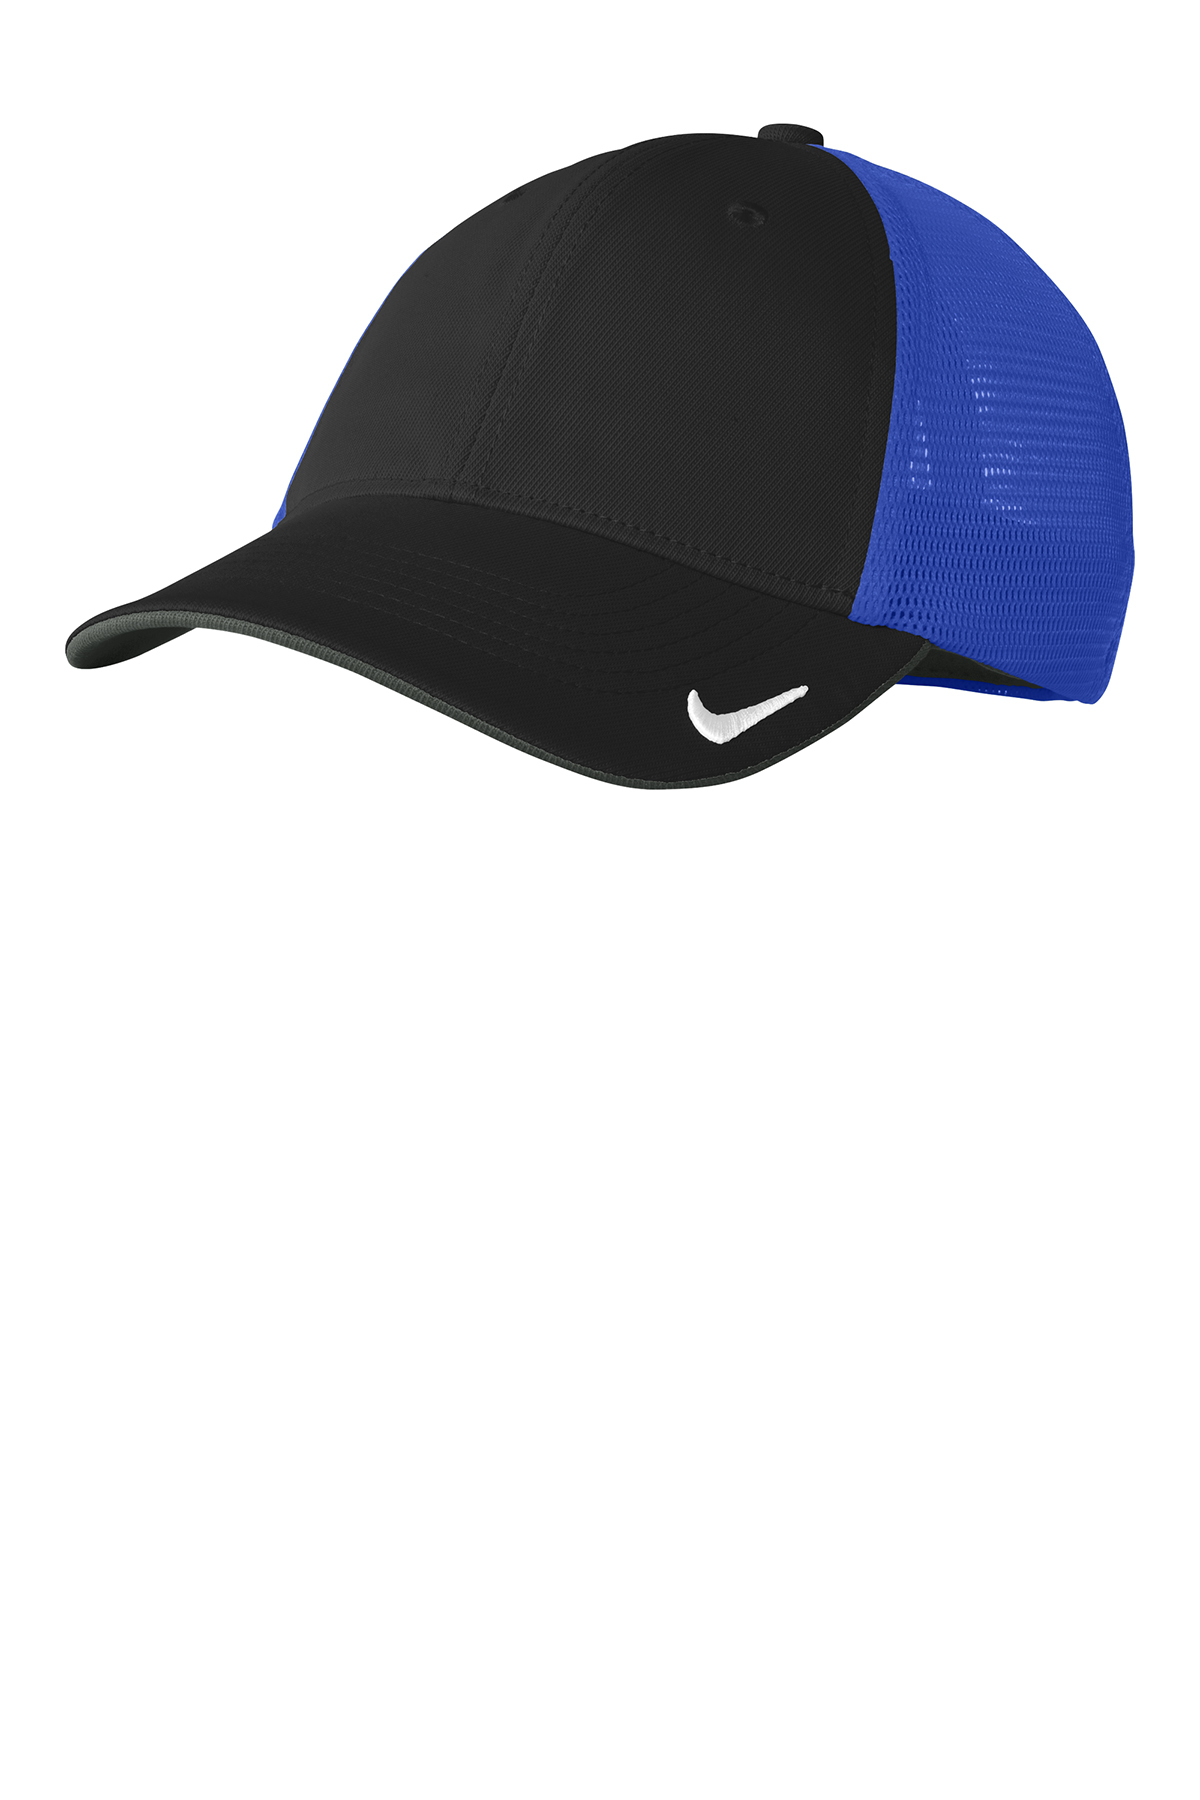 Nike Golf NKAO9293 - Dri-FIT Mesh Back Cap